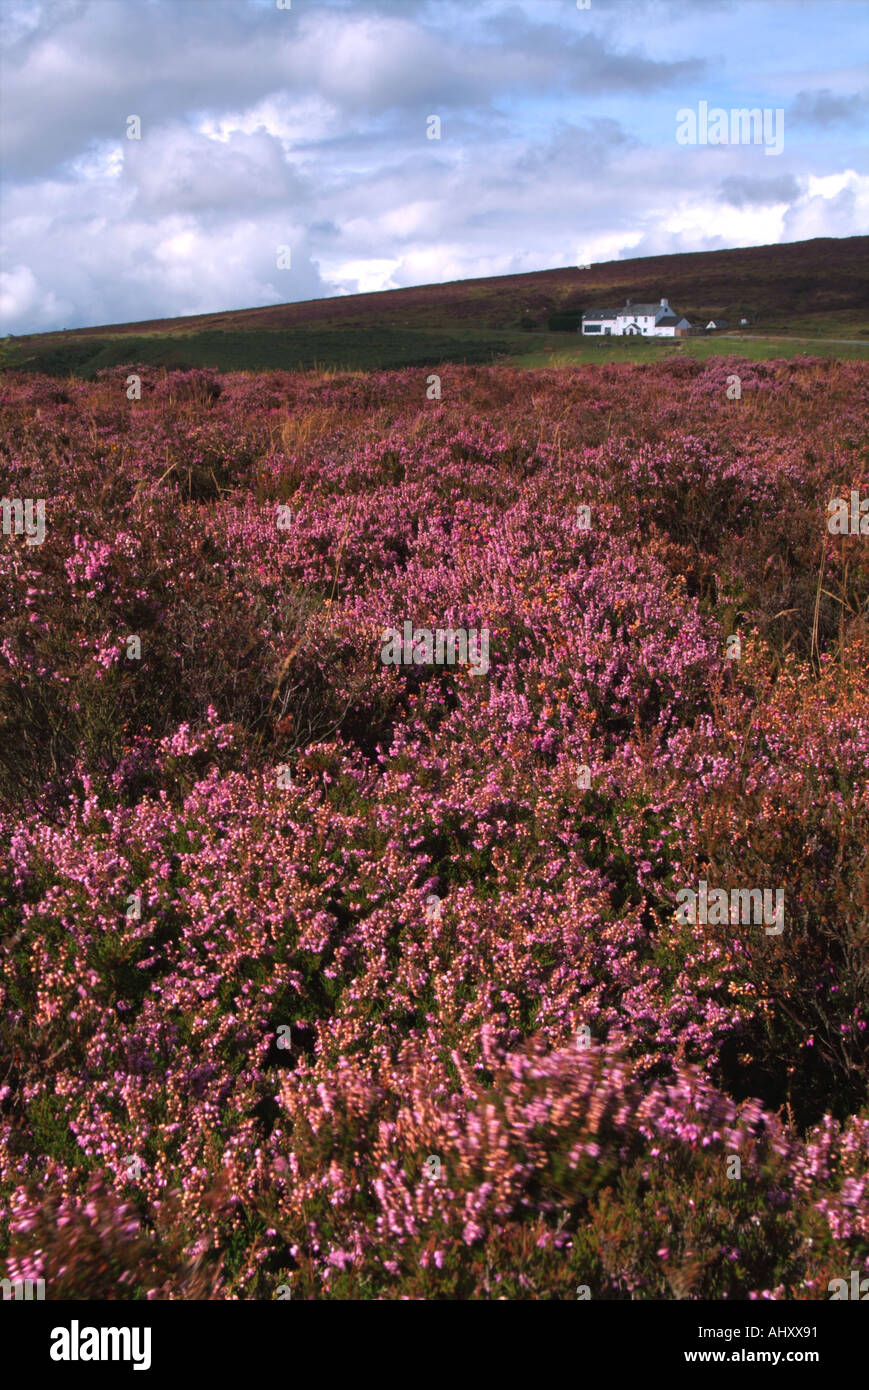 The Warren House Inn pub nestled amongst heather clad moorland Dartmoor Devon UK - Stock Image